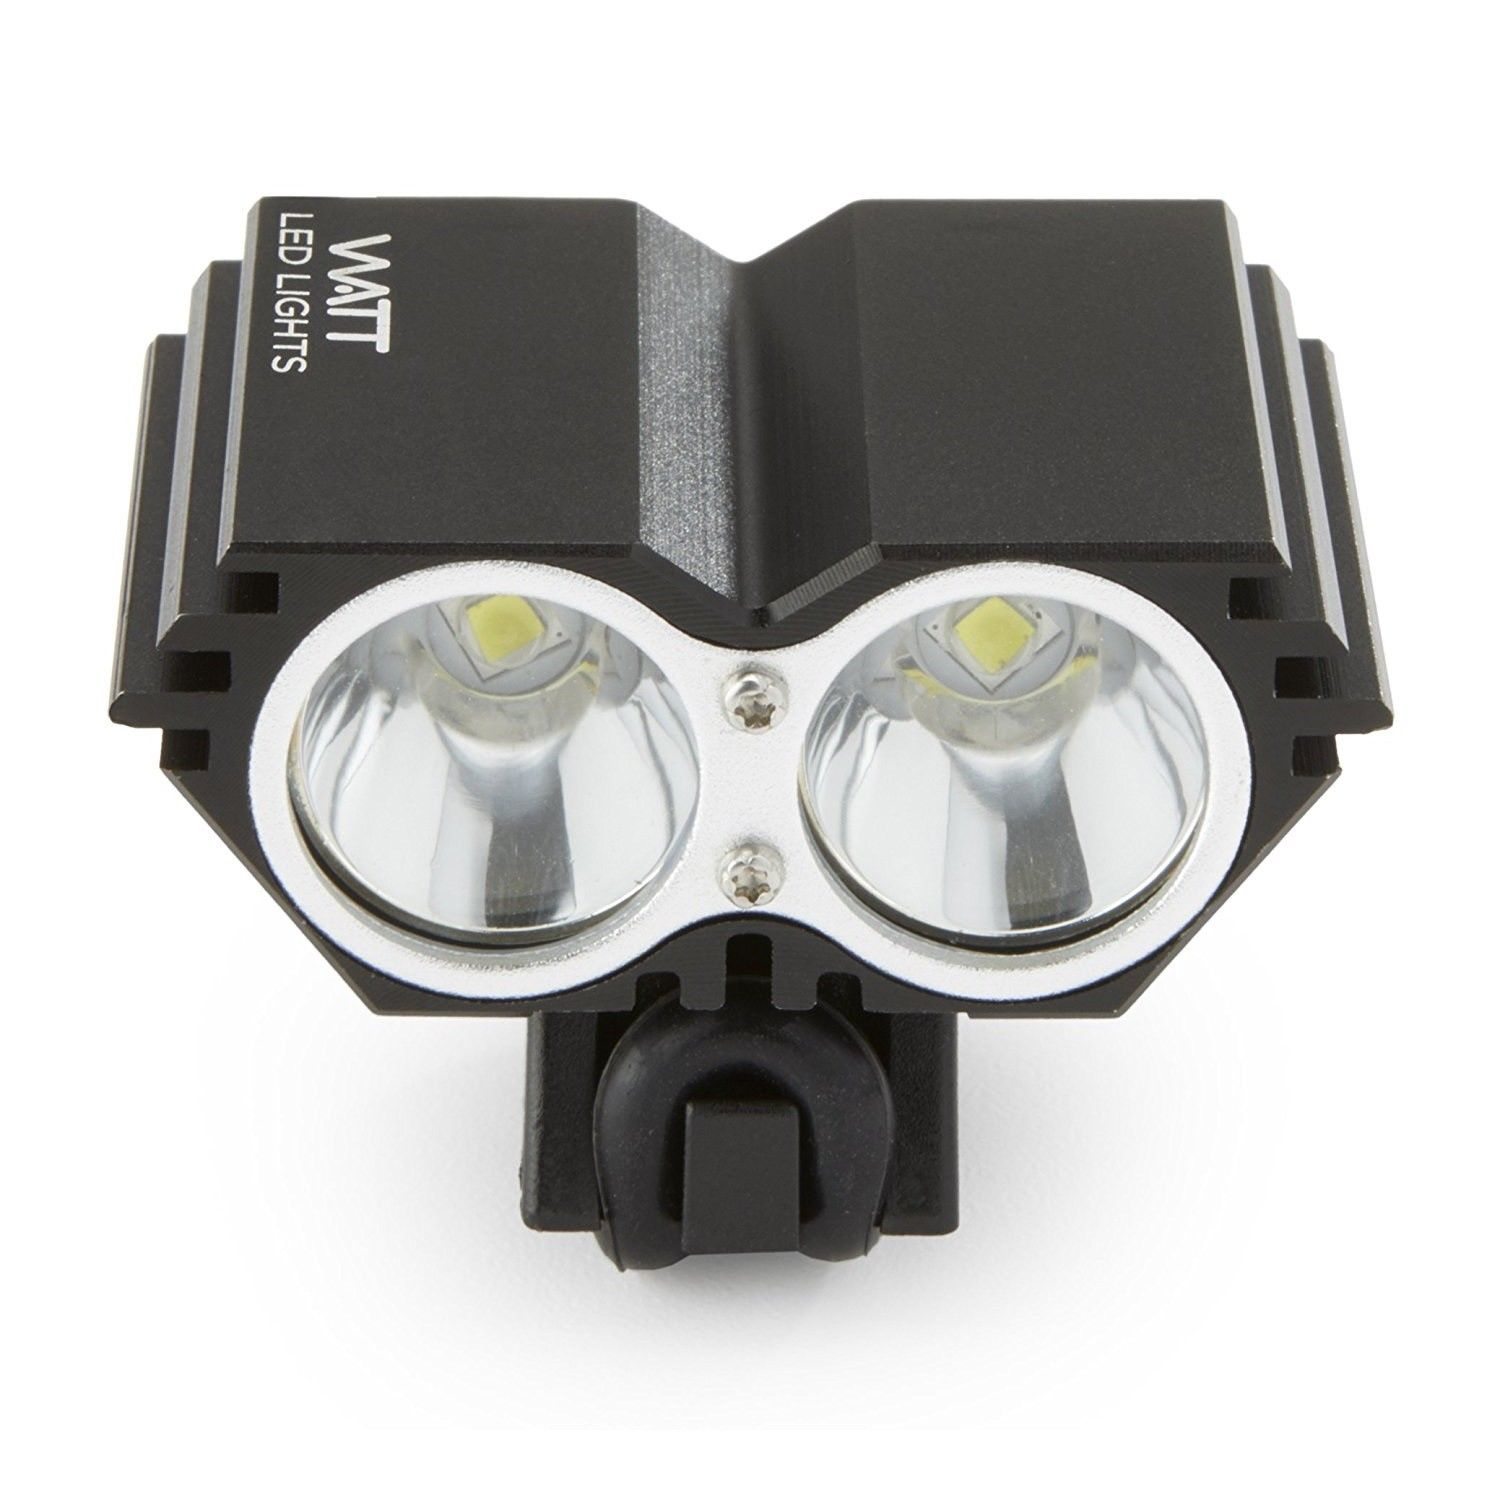 WATT Rechargeable LED Bike Light - 1100 Lumens Bicycle Headlight - for Cycling Safety